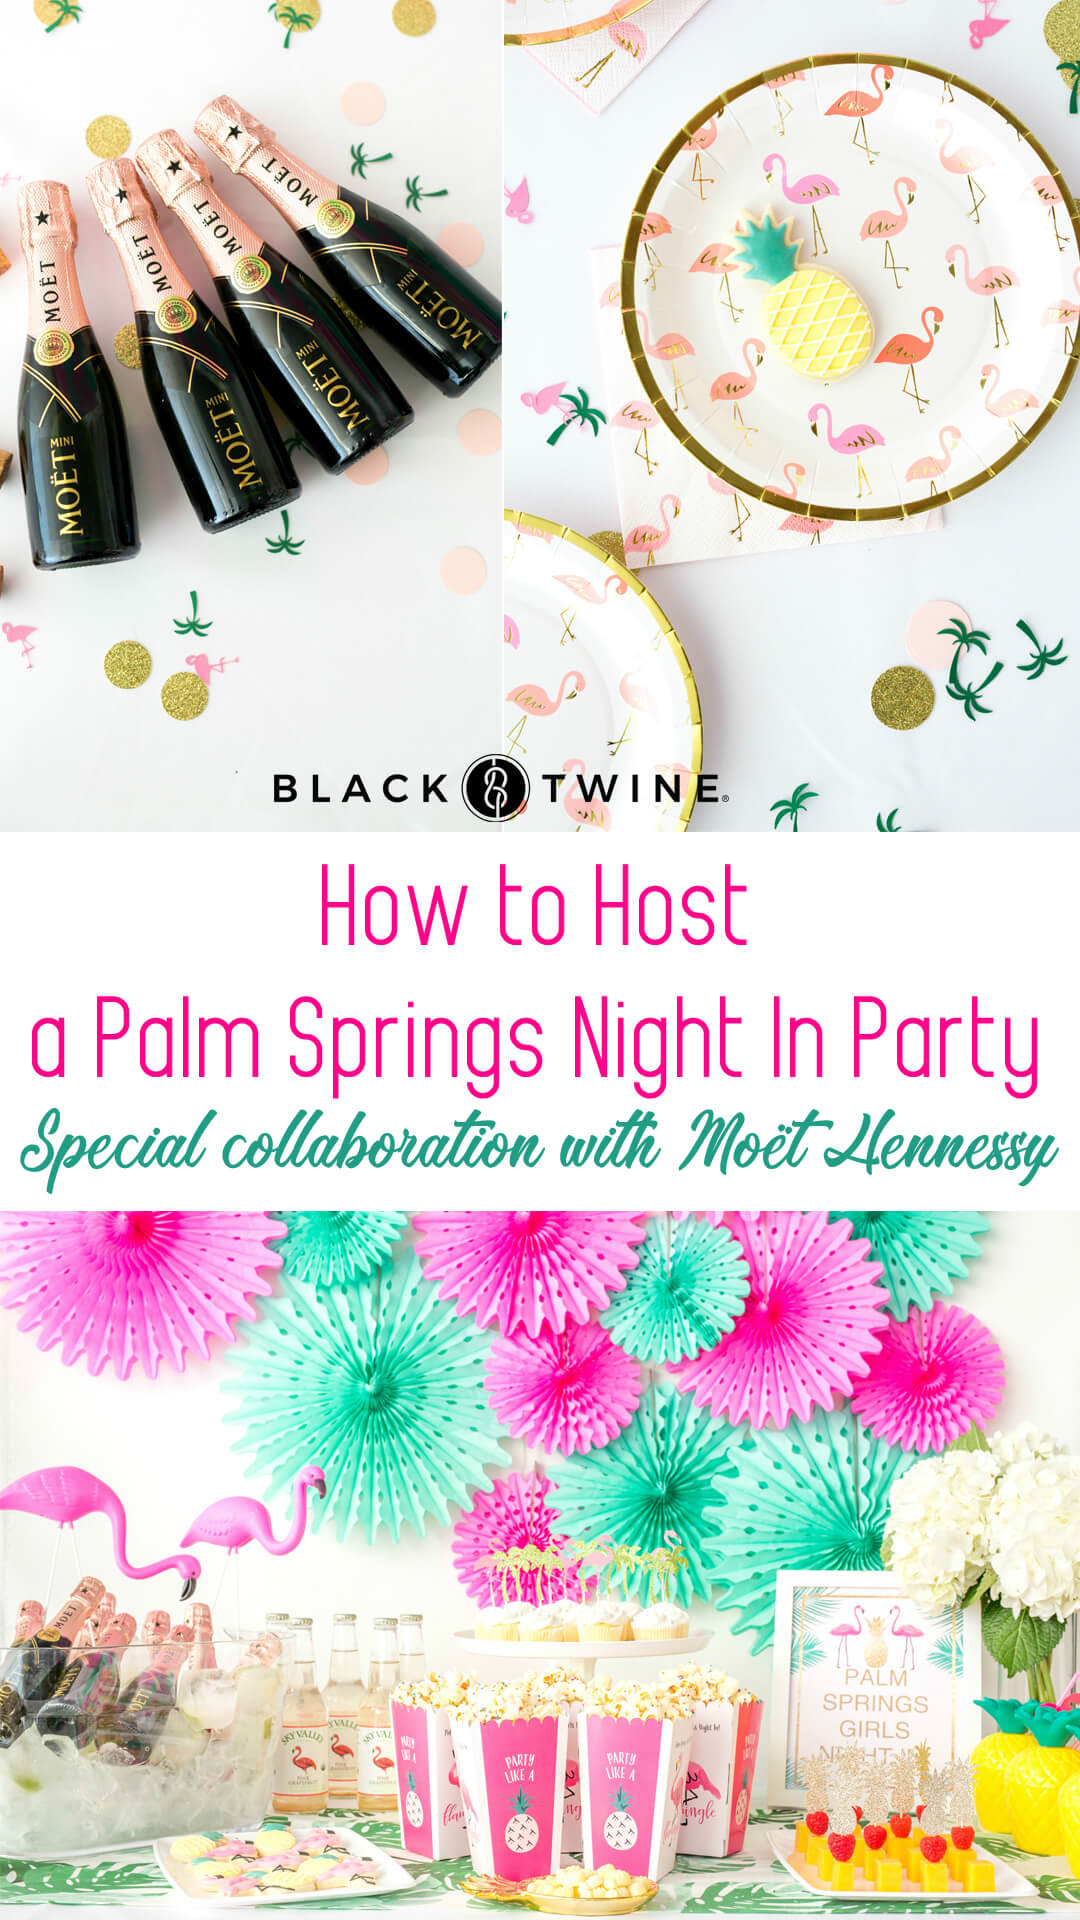 Flamingo Bottle Opener Thank You Favor from Palm Springs Girls Night In featuring Rose Mini Moet Champagne| Black Twine